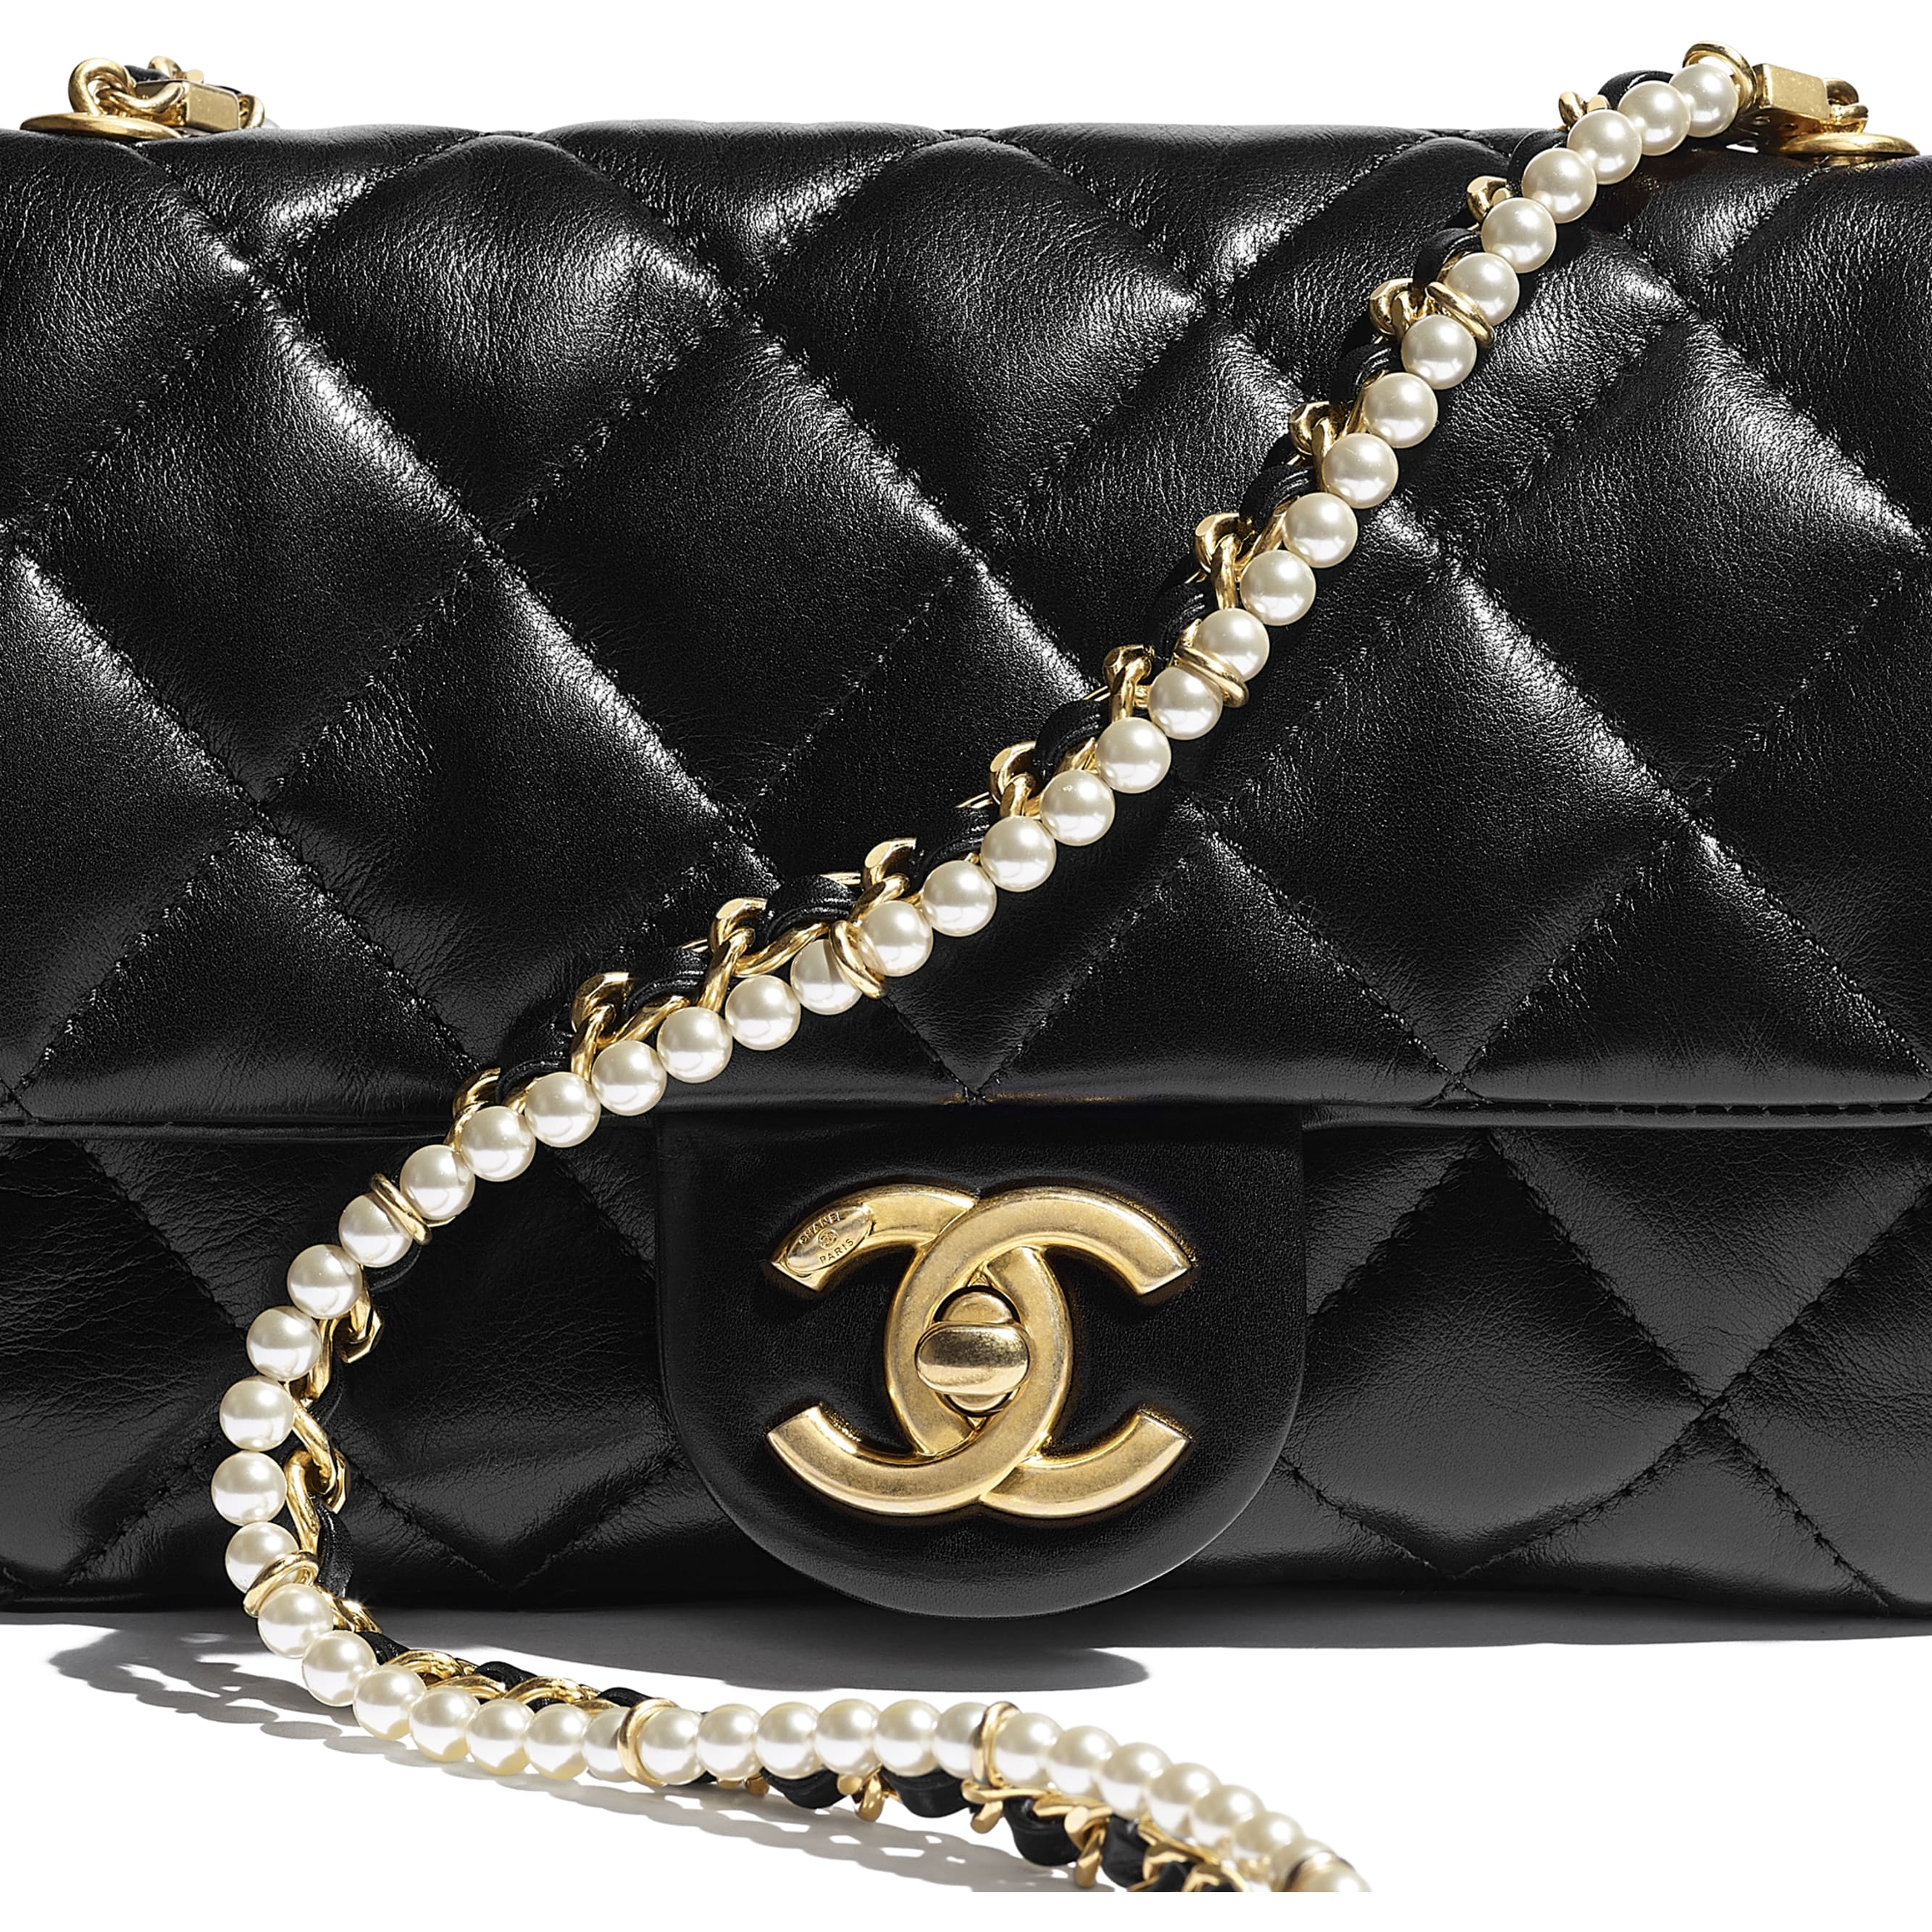 Flap Bag - Black - Calfskin, Crystal Pearls & Gold-Tone Metal - CHANEL - Extra view - see standard sized version